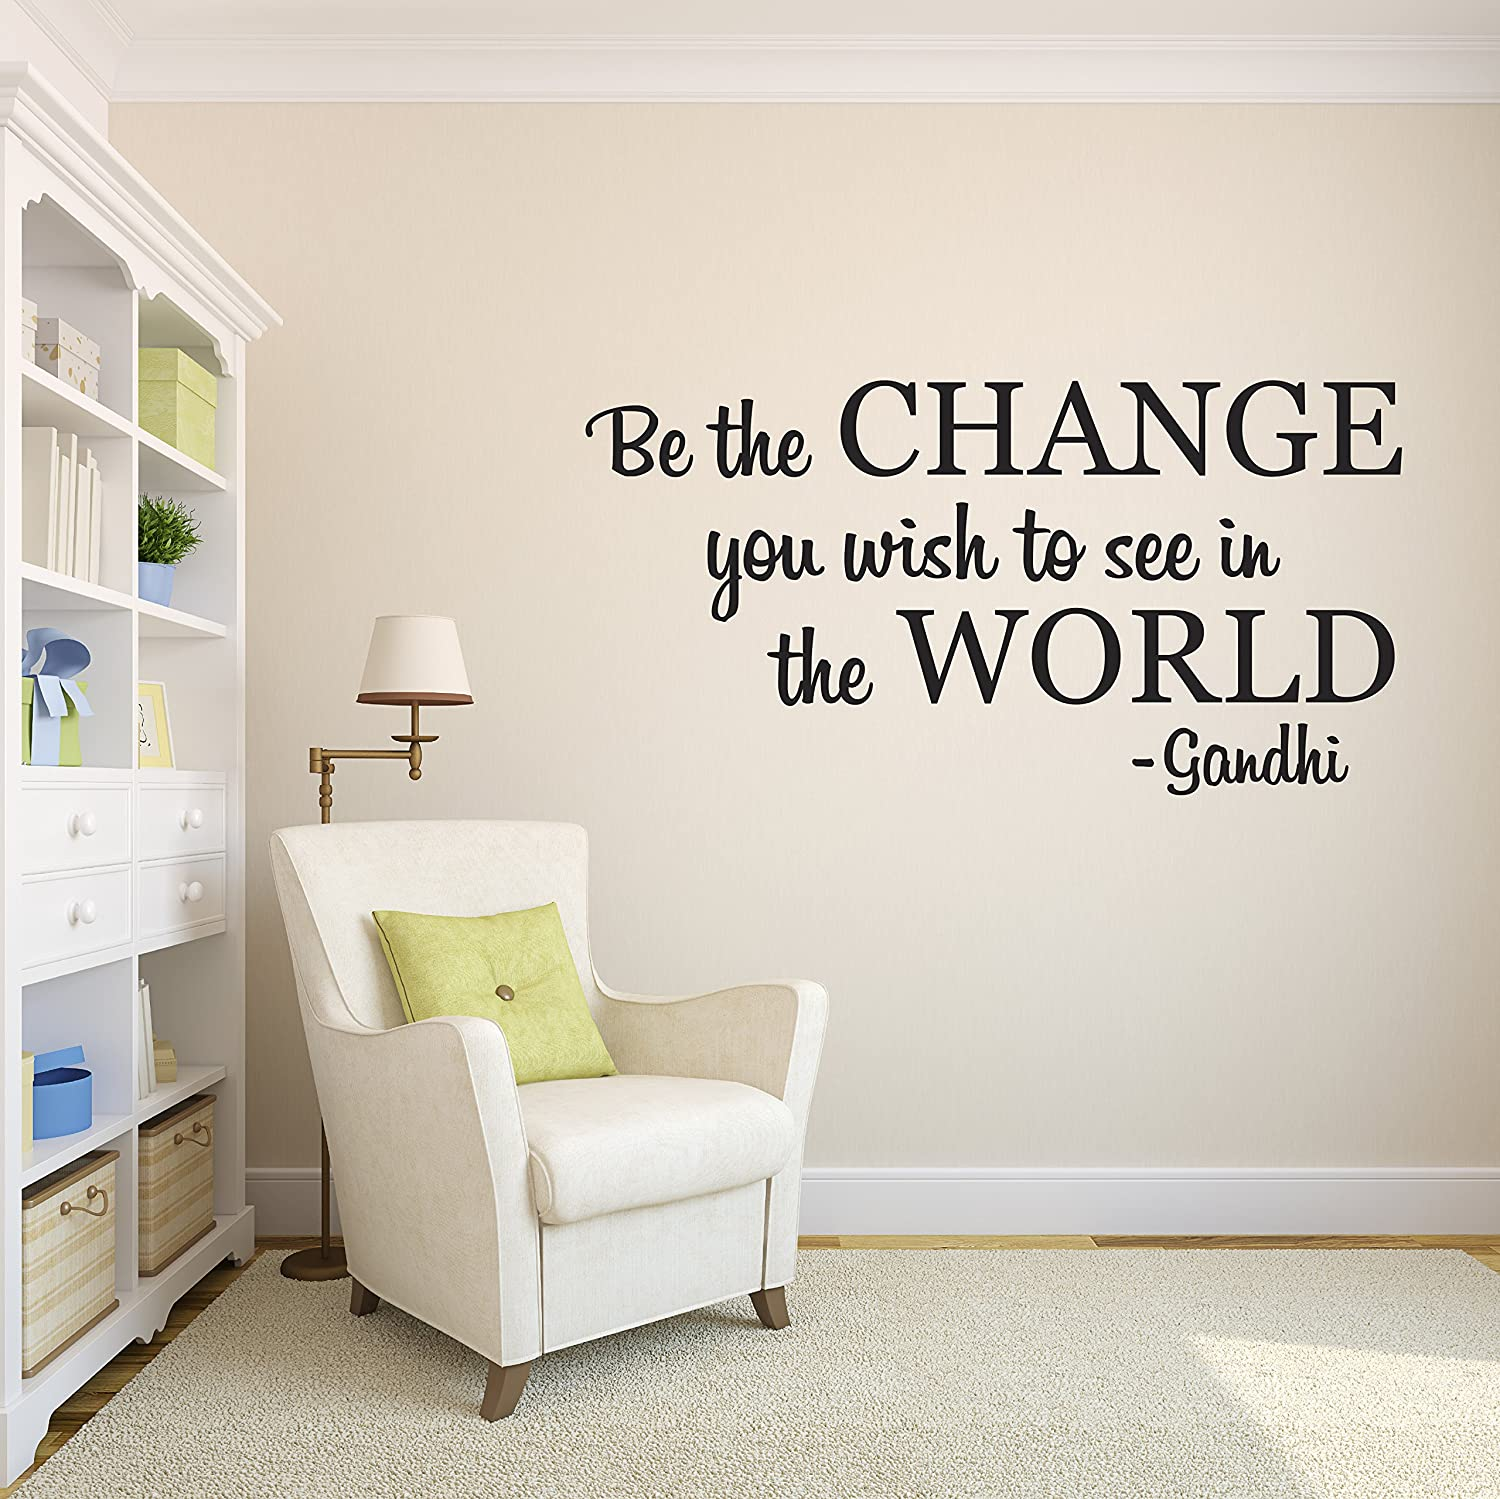 Be The Change You Wish To See In The World Gandhi Wall Quote Sayings Letters Decals Lettering Vinyl Sticker Sign Decor Baby